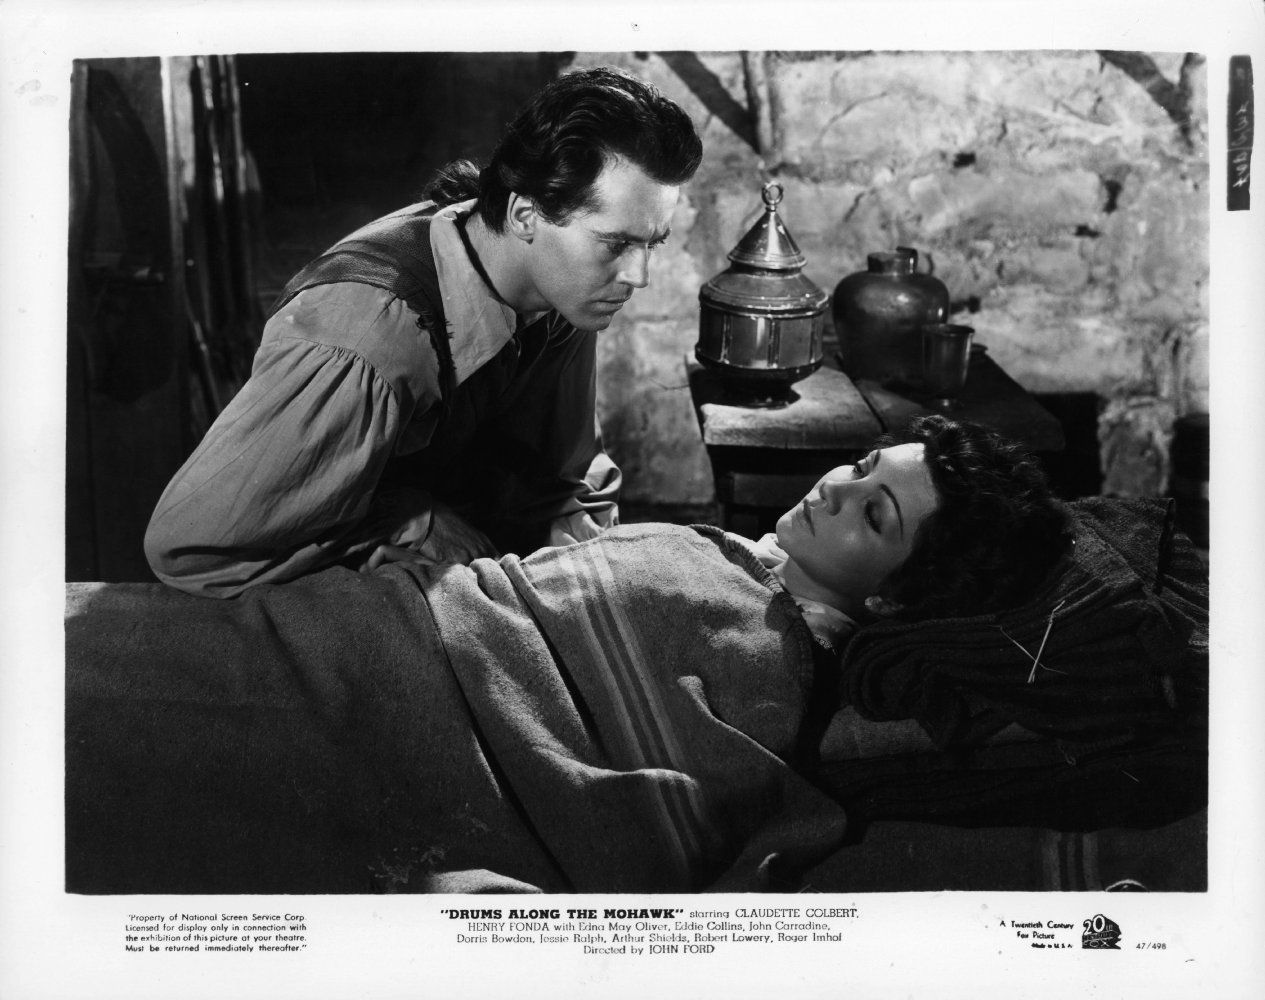 drums along the mohawk film review Drums along the mohawk is a 1939 american historical drama film based upon a 1936 novel of the same name by american author, walter d edmonds the film was.